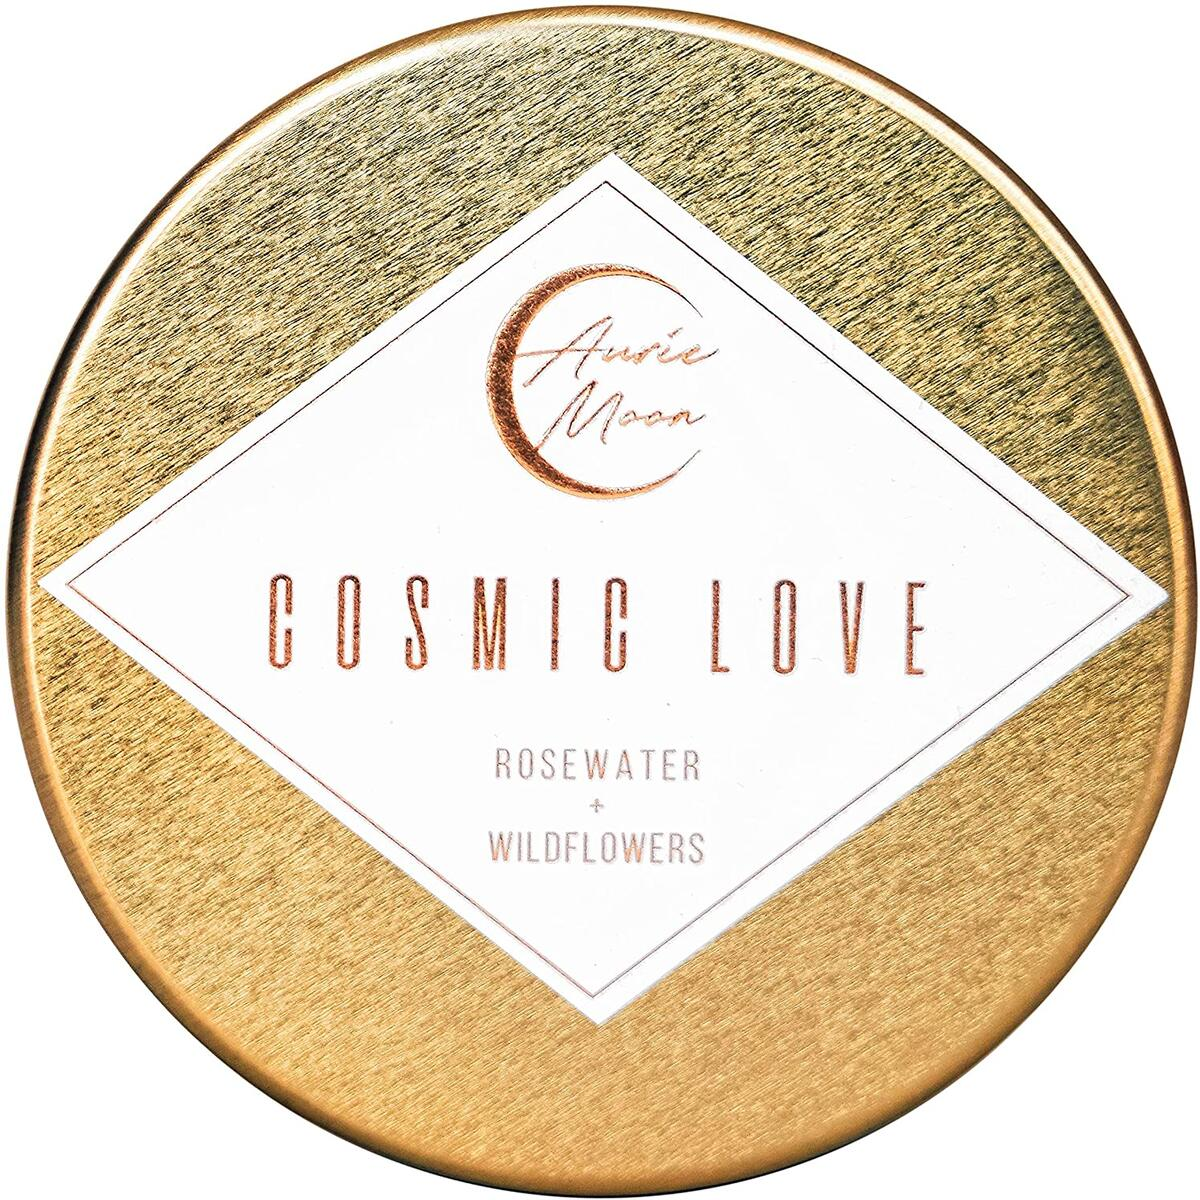 Auric Moon | Rosewater + Wildflowers Scented Luxury Soy Coconut Candle for Women | Slow 35+ Hour Burn | Love & Elevate Your Space | 5.5 Oz Metal Tin with Lid | Hand-poured in California